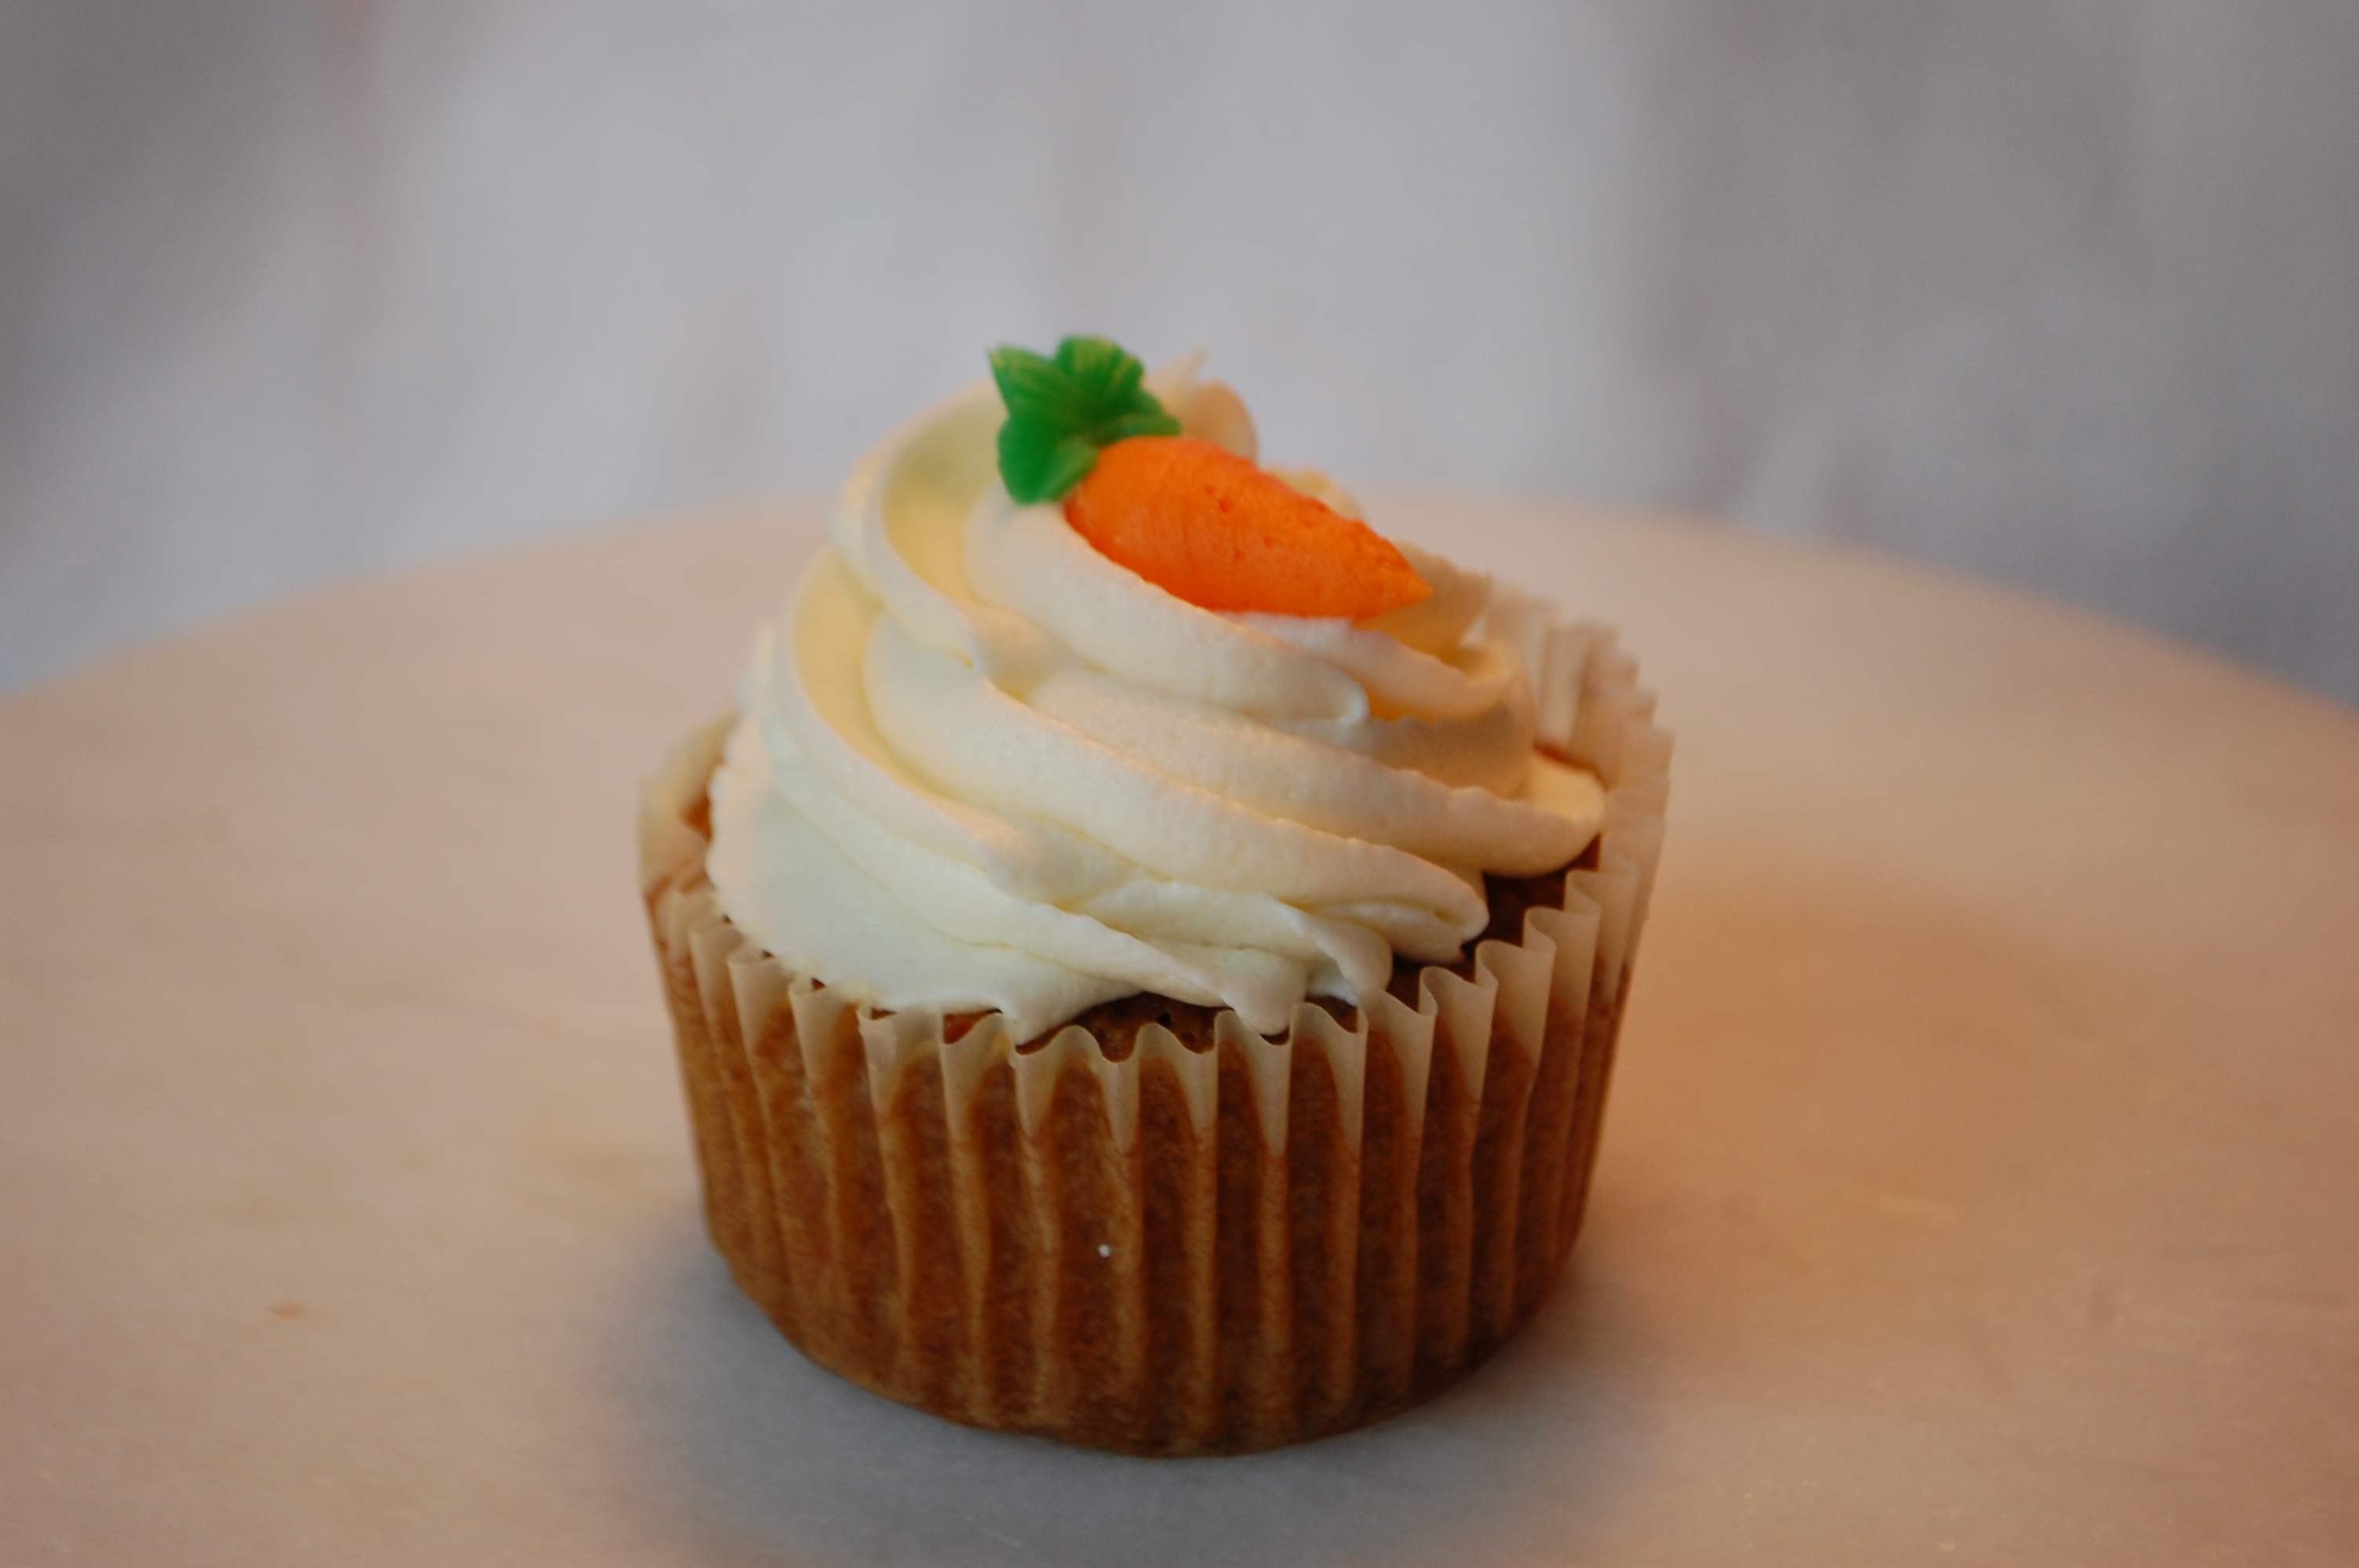 A moist cake chocked full of carrots, walnuts and pineapple. Covered in a cream cheese icing.